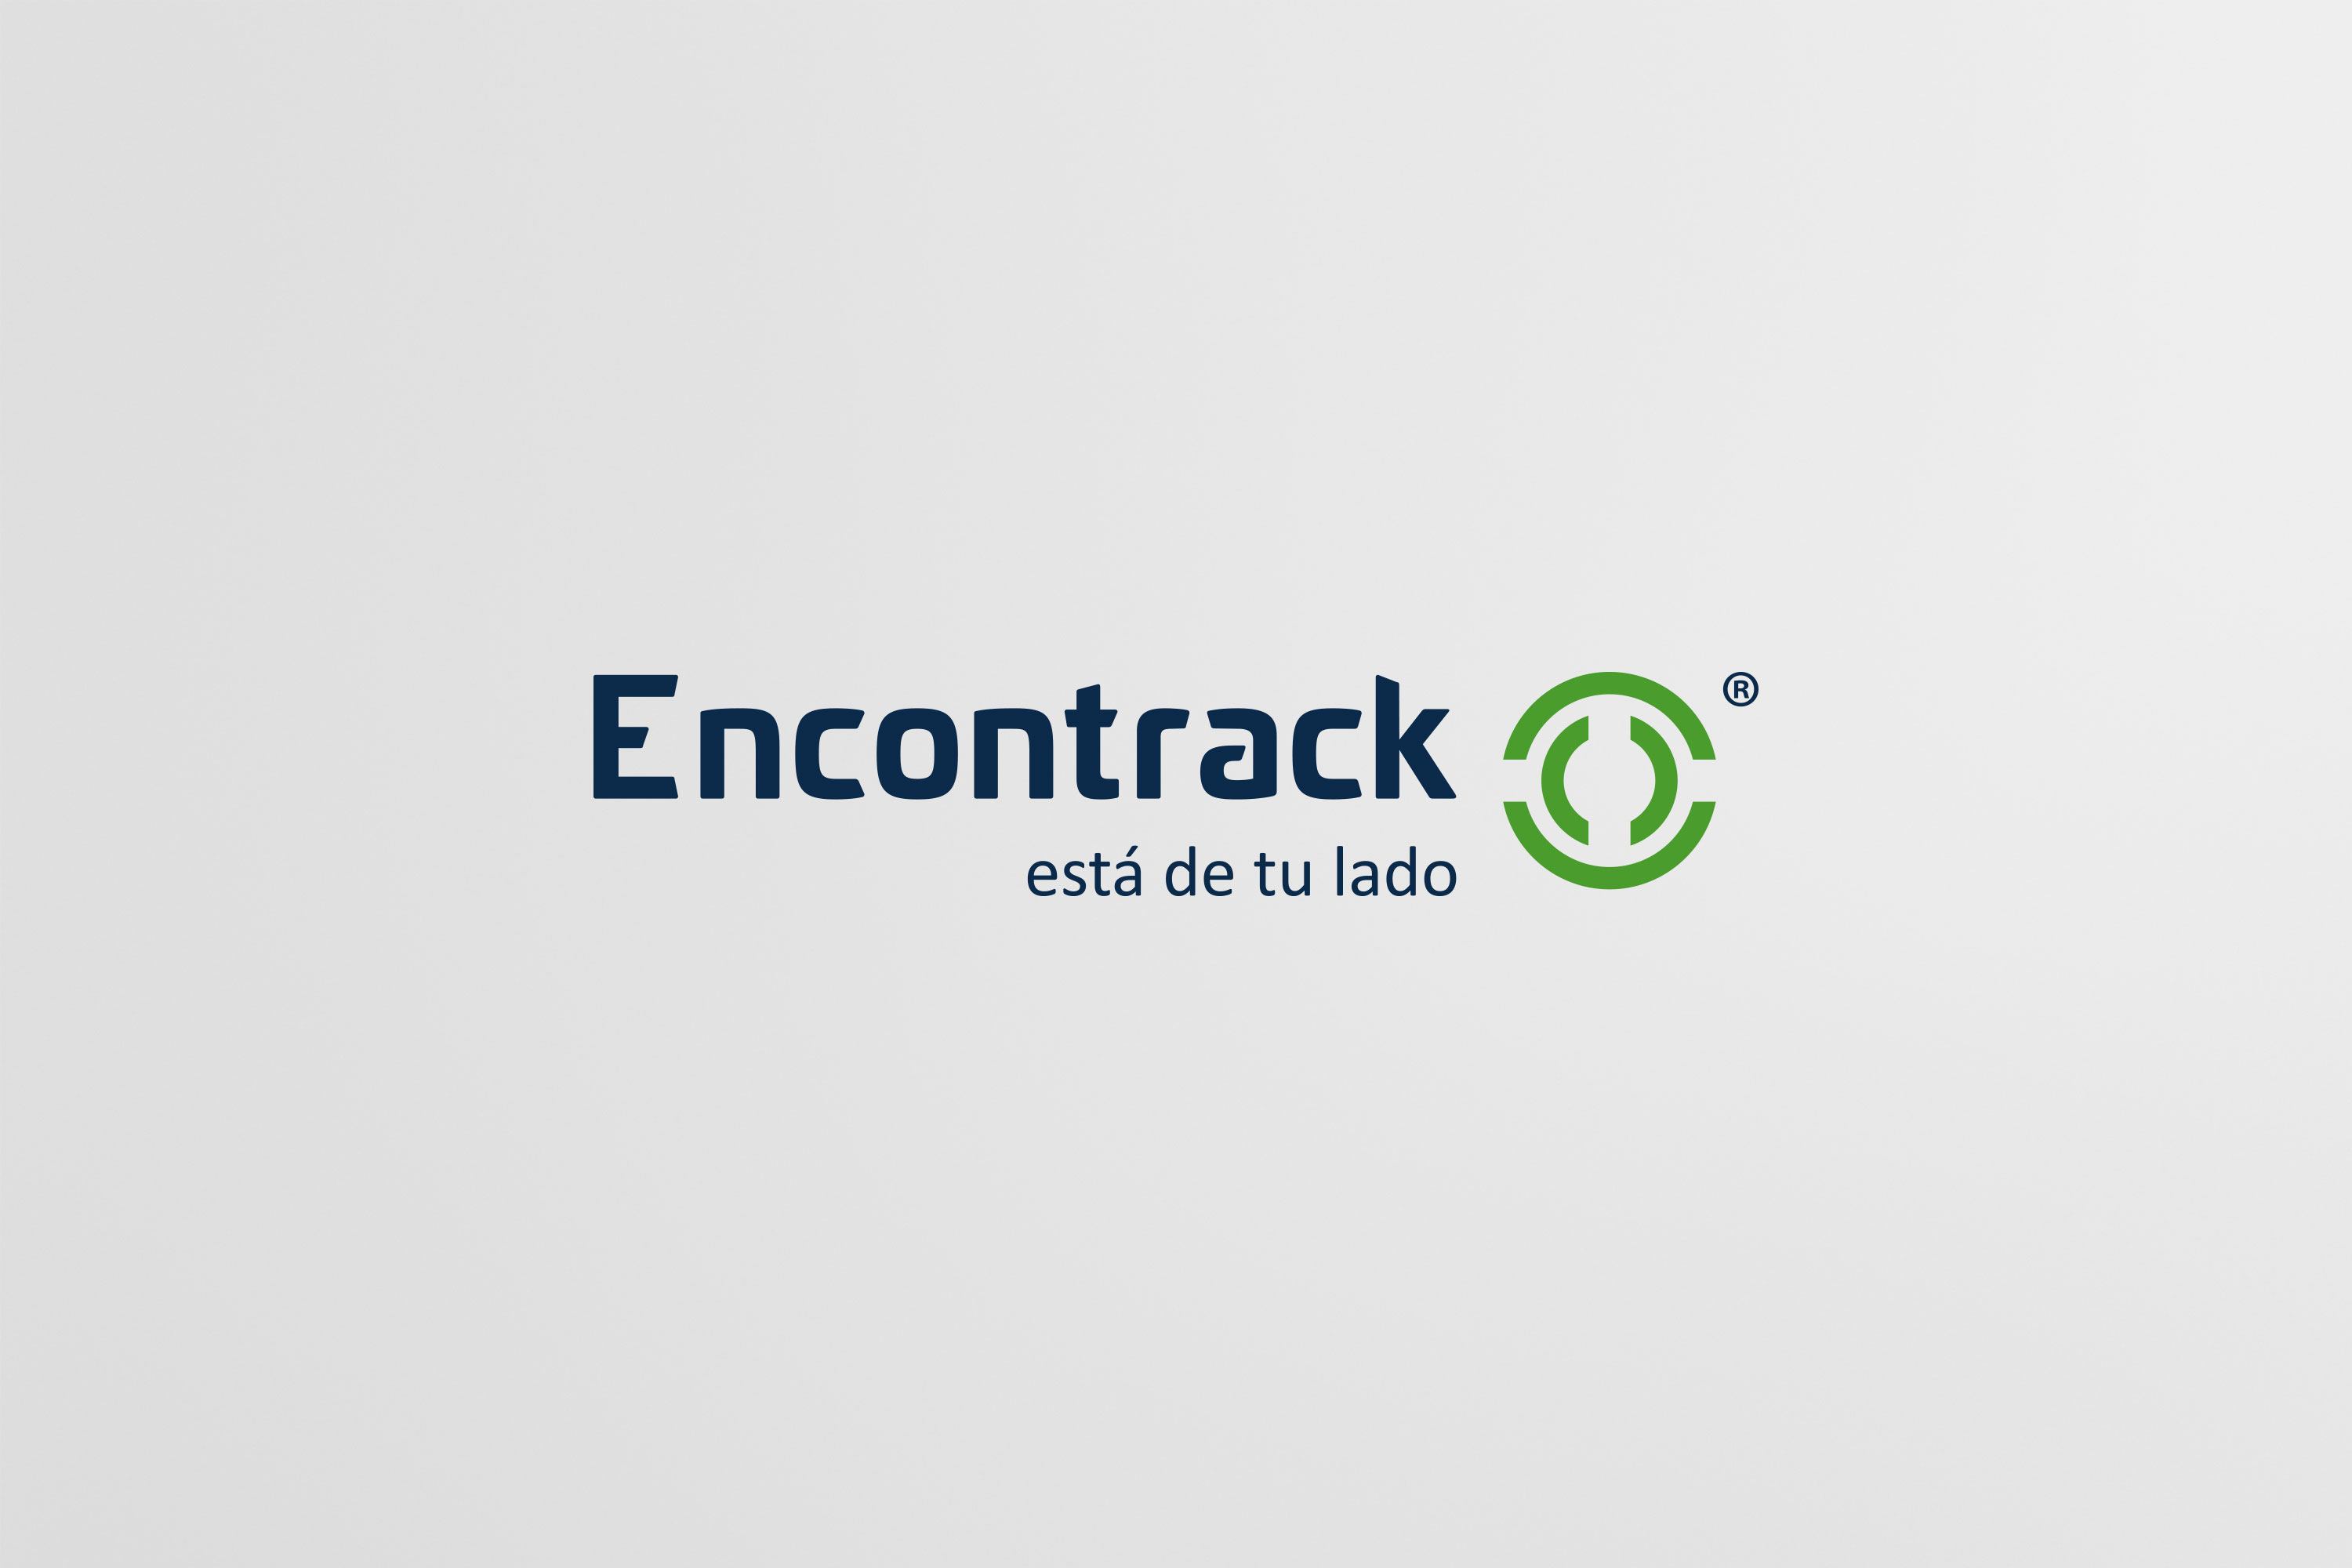 01-logo-encontrack